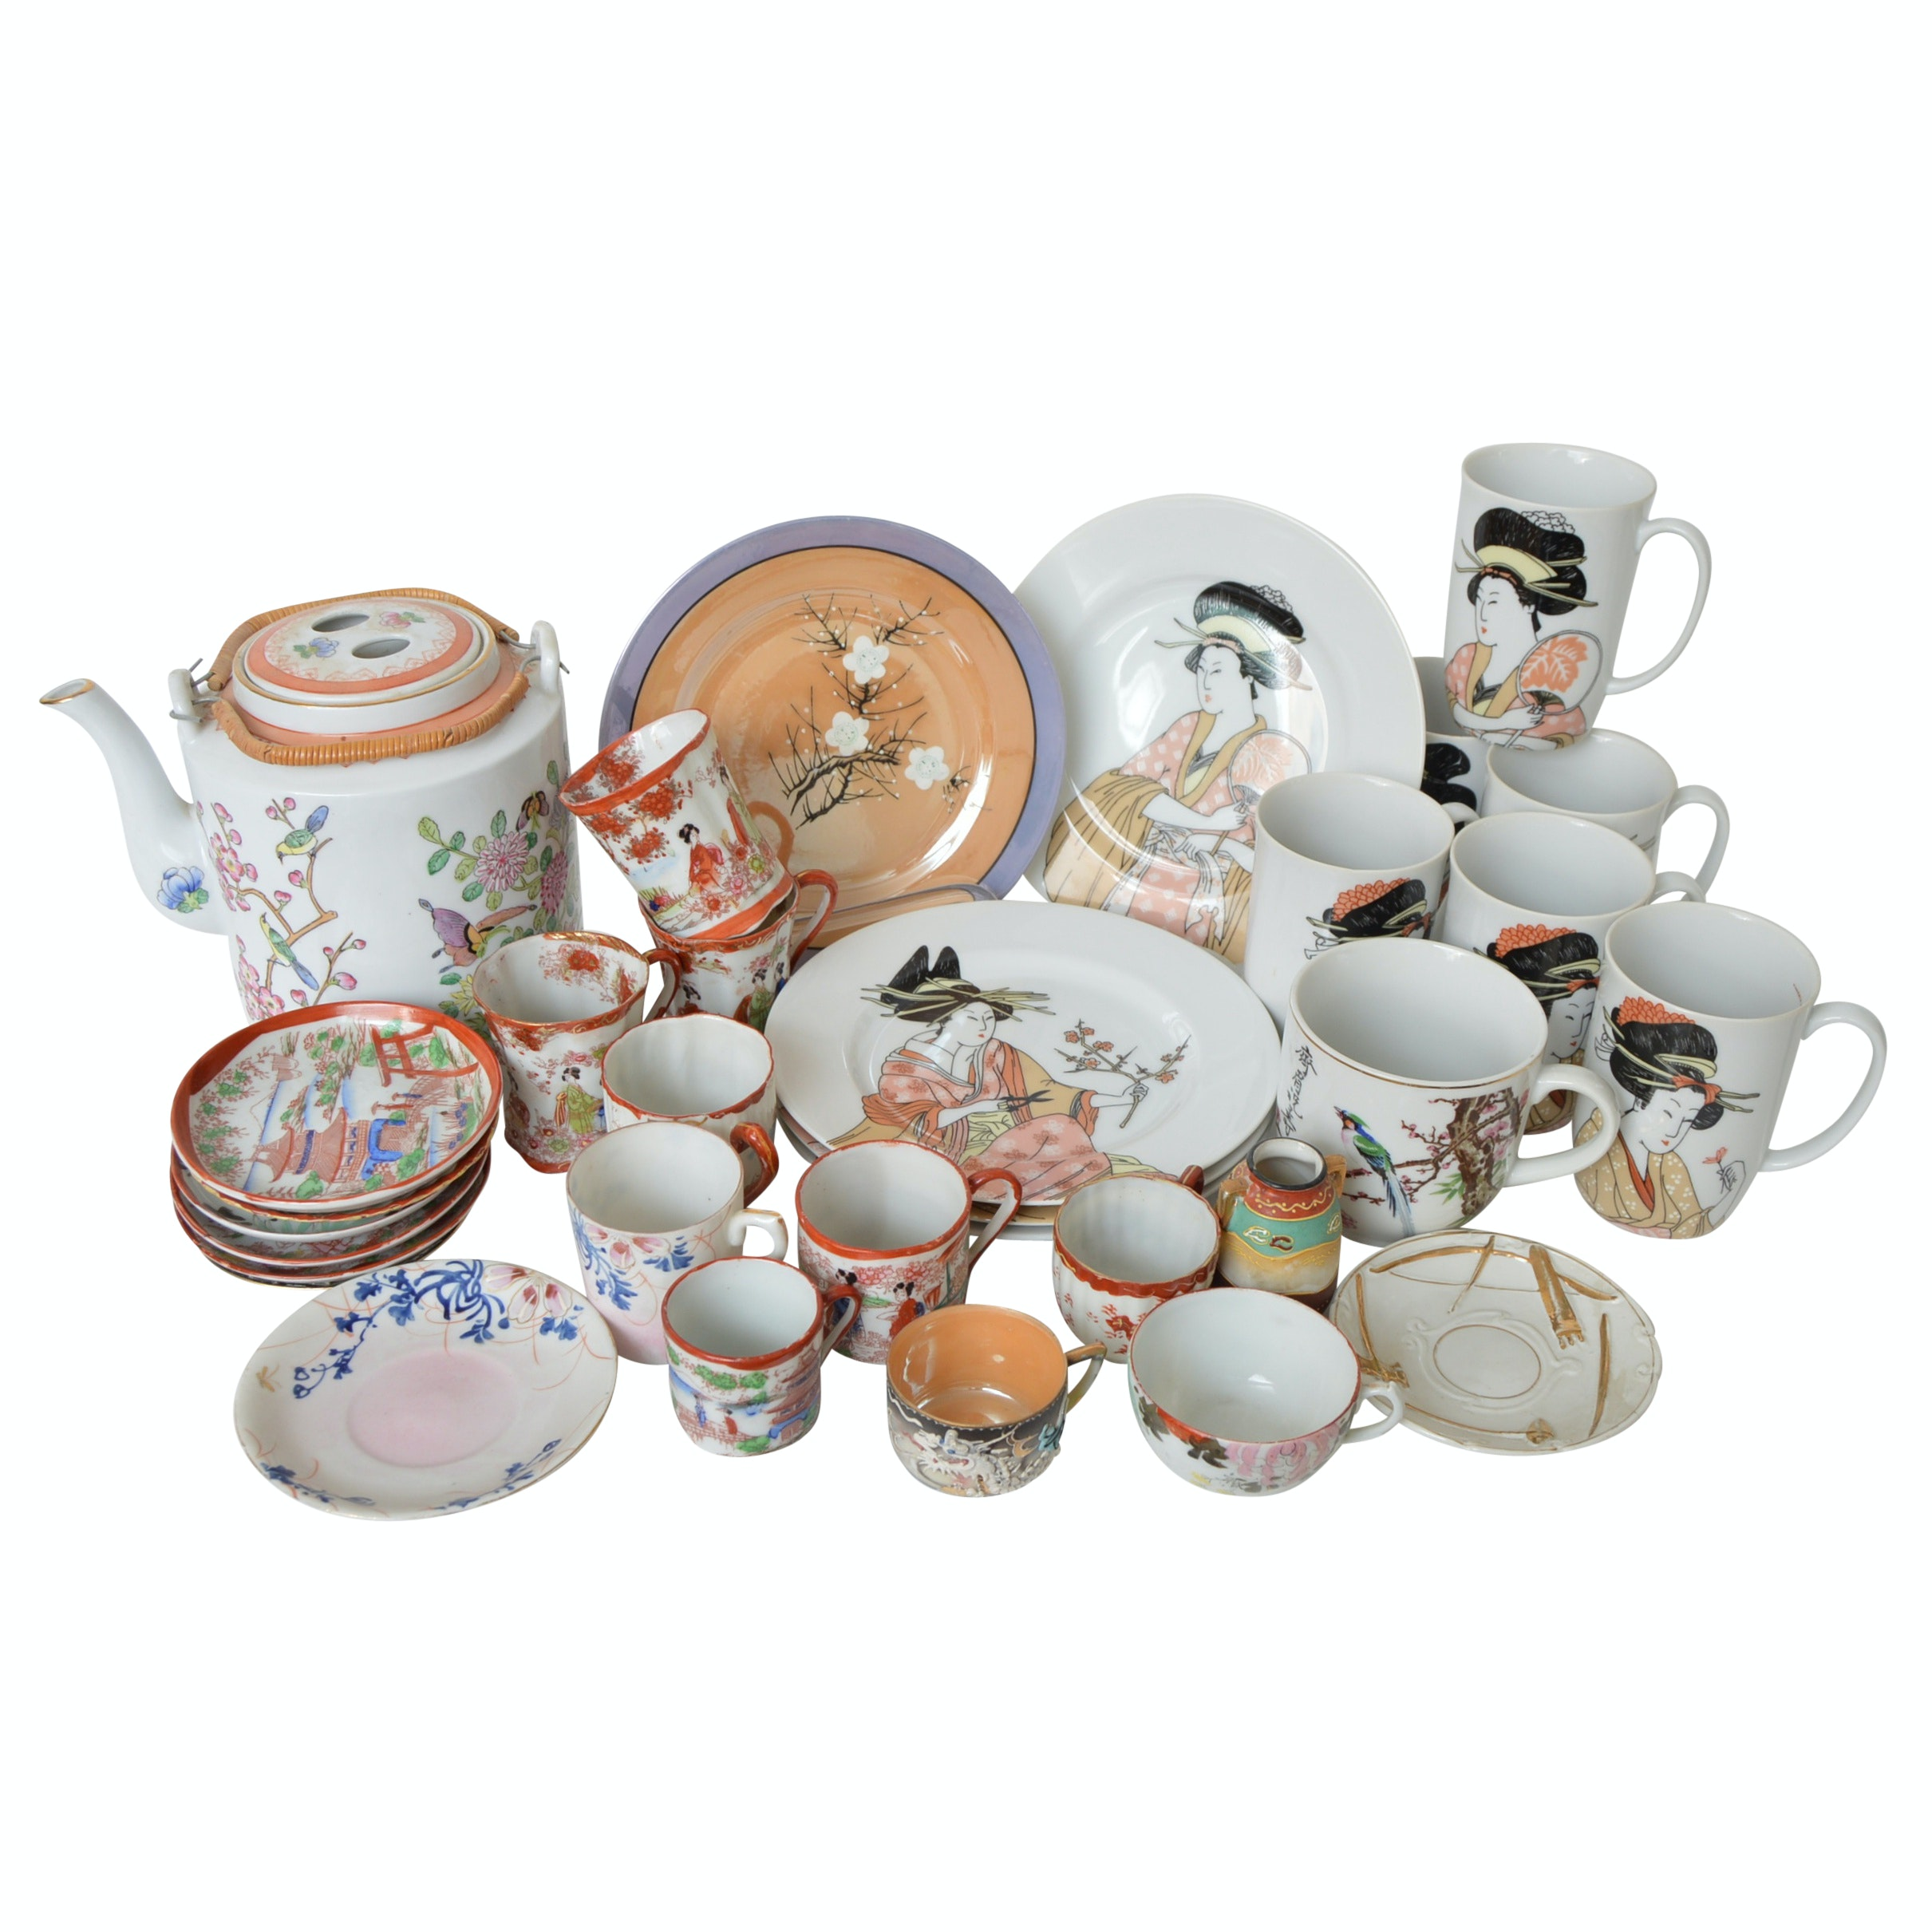 Vintage Japanese China Collection with Teapot